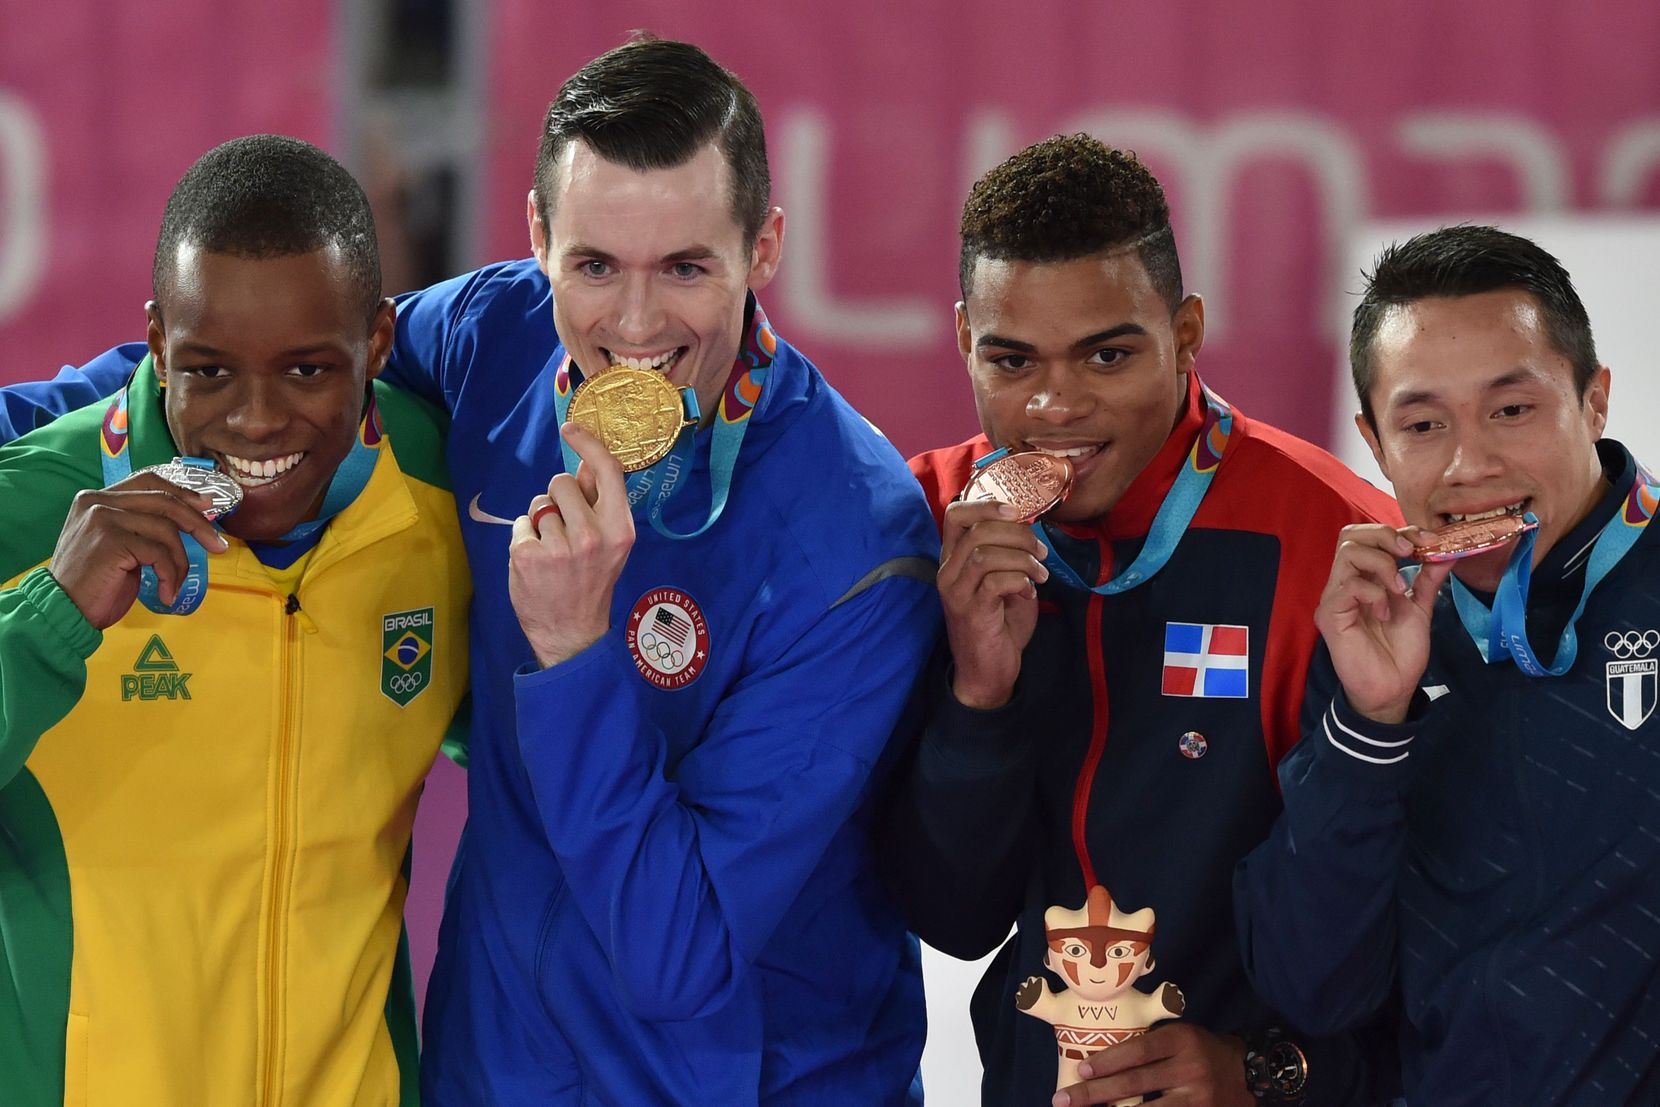 (L to R) Brazil's Verissimo Hernani (silver medal), US Thomas Scott (gold medal), Dominican Republic's Anderson Soriano (bronze medal) and Guatemala's Allan Maldonado (bronze medal) pose during the Pan-American Games Men's Under 75kg Karate awarding ceremony in Lima on August 11, 2019.